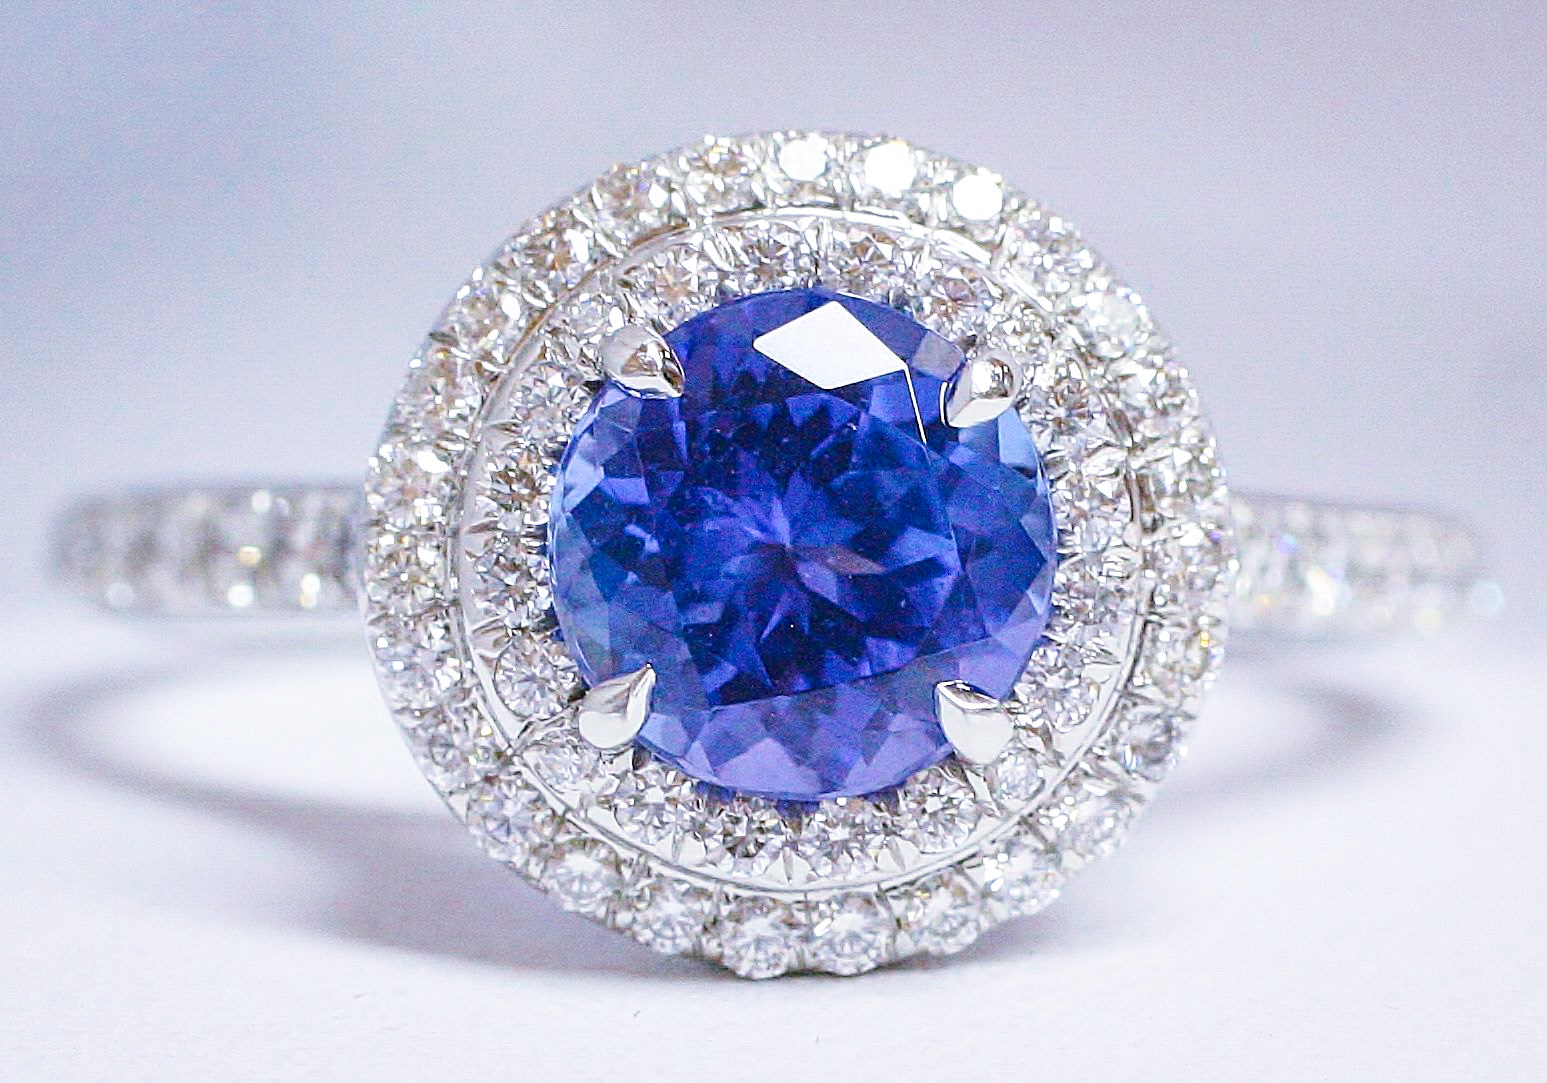 San Francisco Jewelry Buyers  Sell Your Estate Jewelry. Federal Tax Collections Home Inspection Miami. Is Icdc College Accredited Moving In Florida. Instrumentation Online Courses. Replacement Windows Vs New Windows. Best Way To Repair Bad Credit. School Security Articles Www Lewisandclark Com. Small Business Liability Online Type Learning. Medical Assistant License Florida